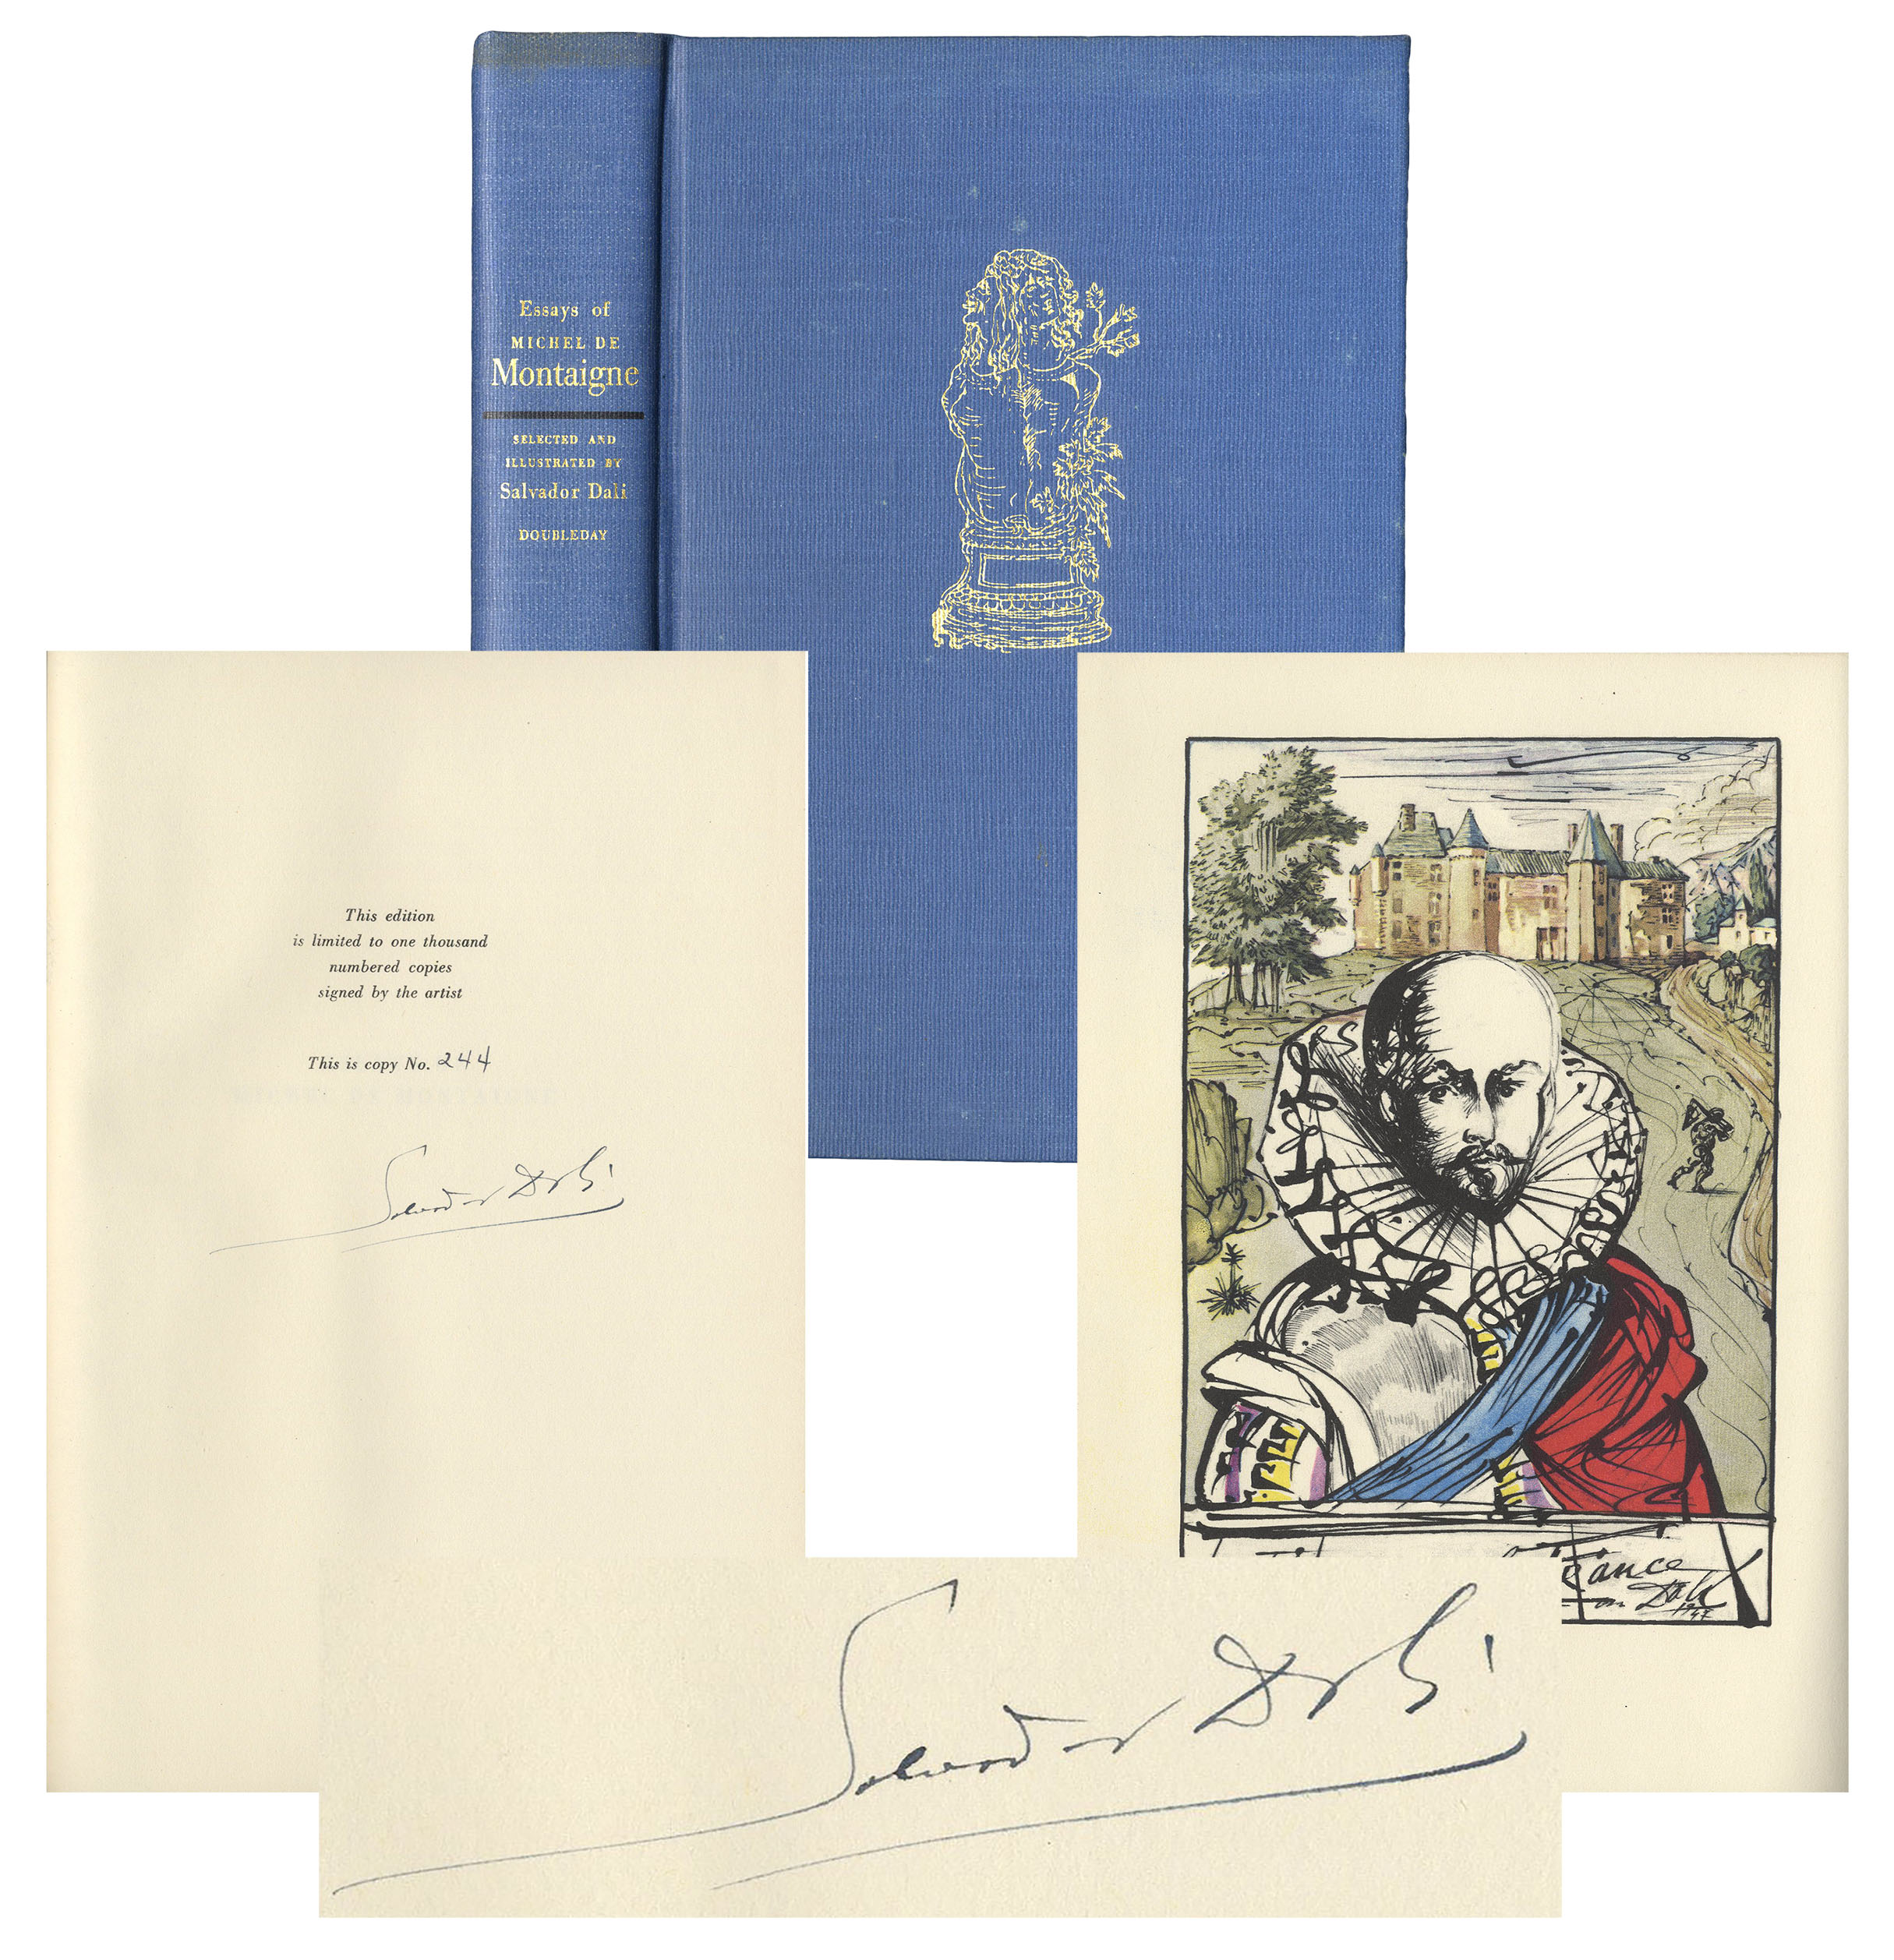 essays on michel de montaigne salvador dali Find helpful customer reviews and review ratings for essays of michel de montaigne [translated by charles cotton] selected and illustrated by salvador dali at amazoncom read honest and unbiased product reviews from our users.